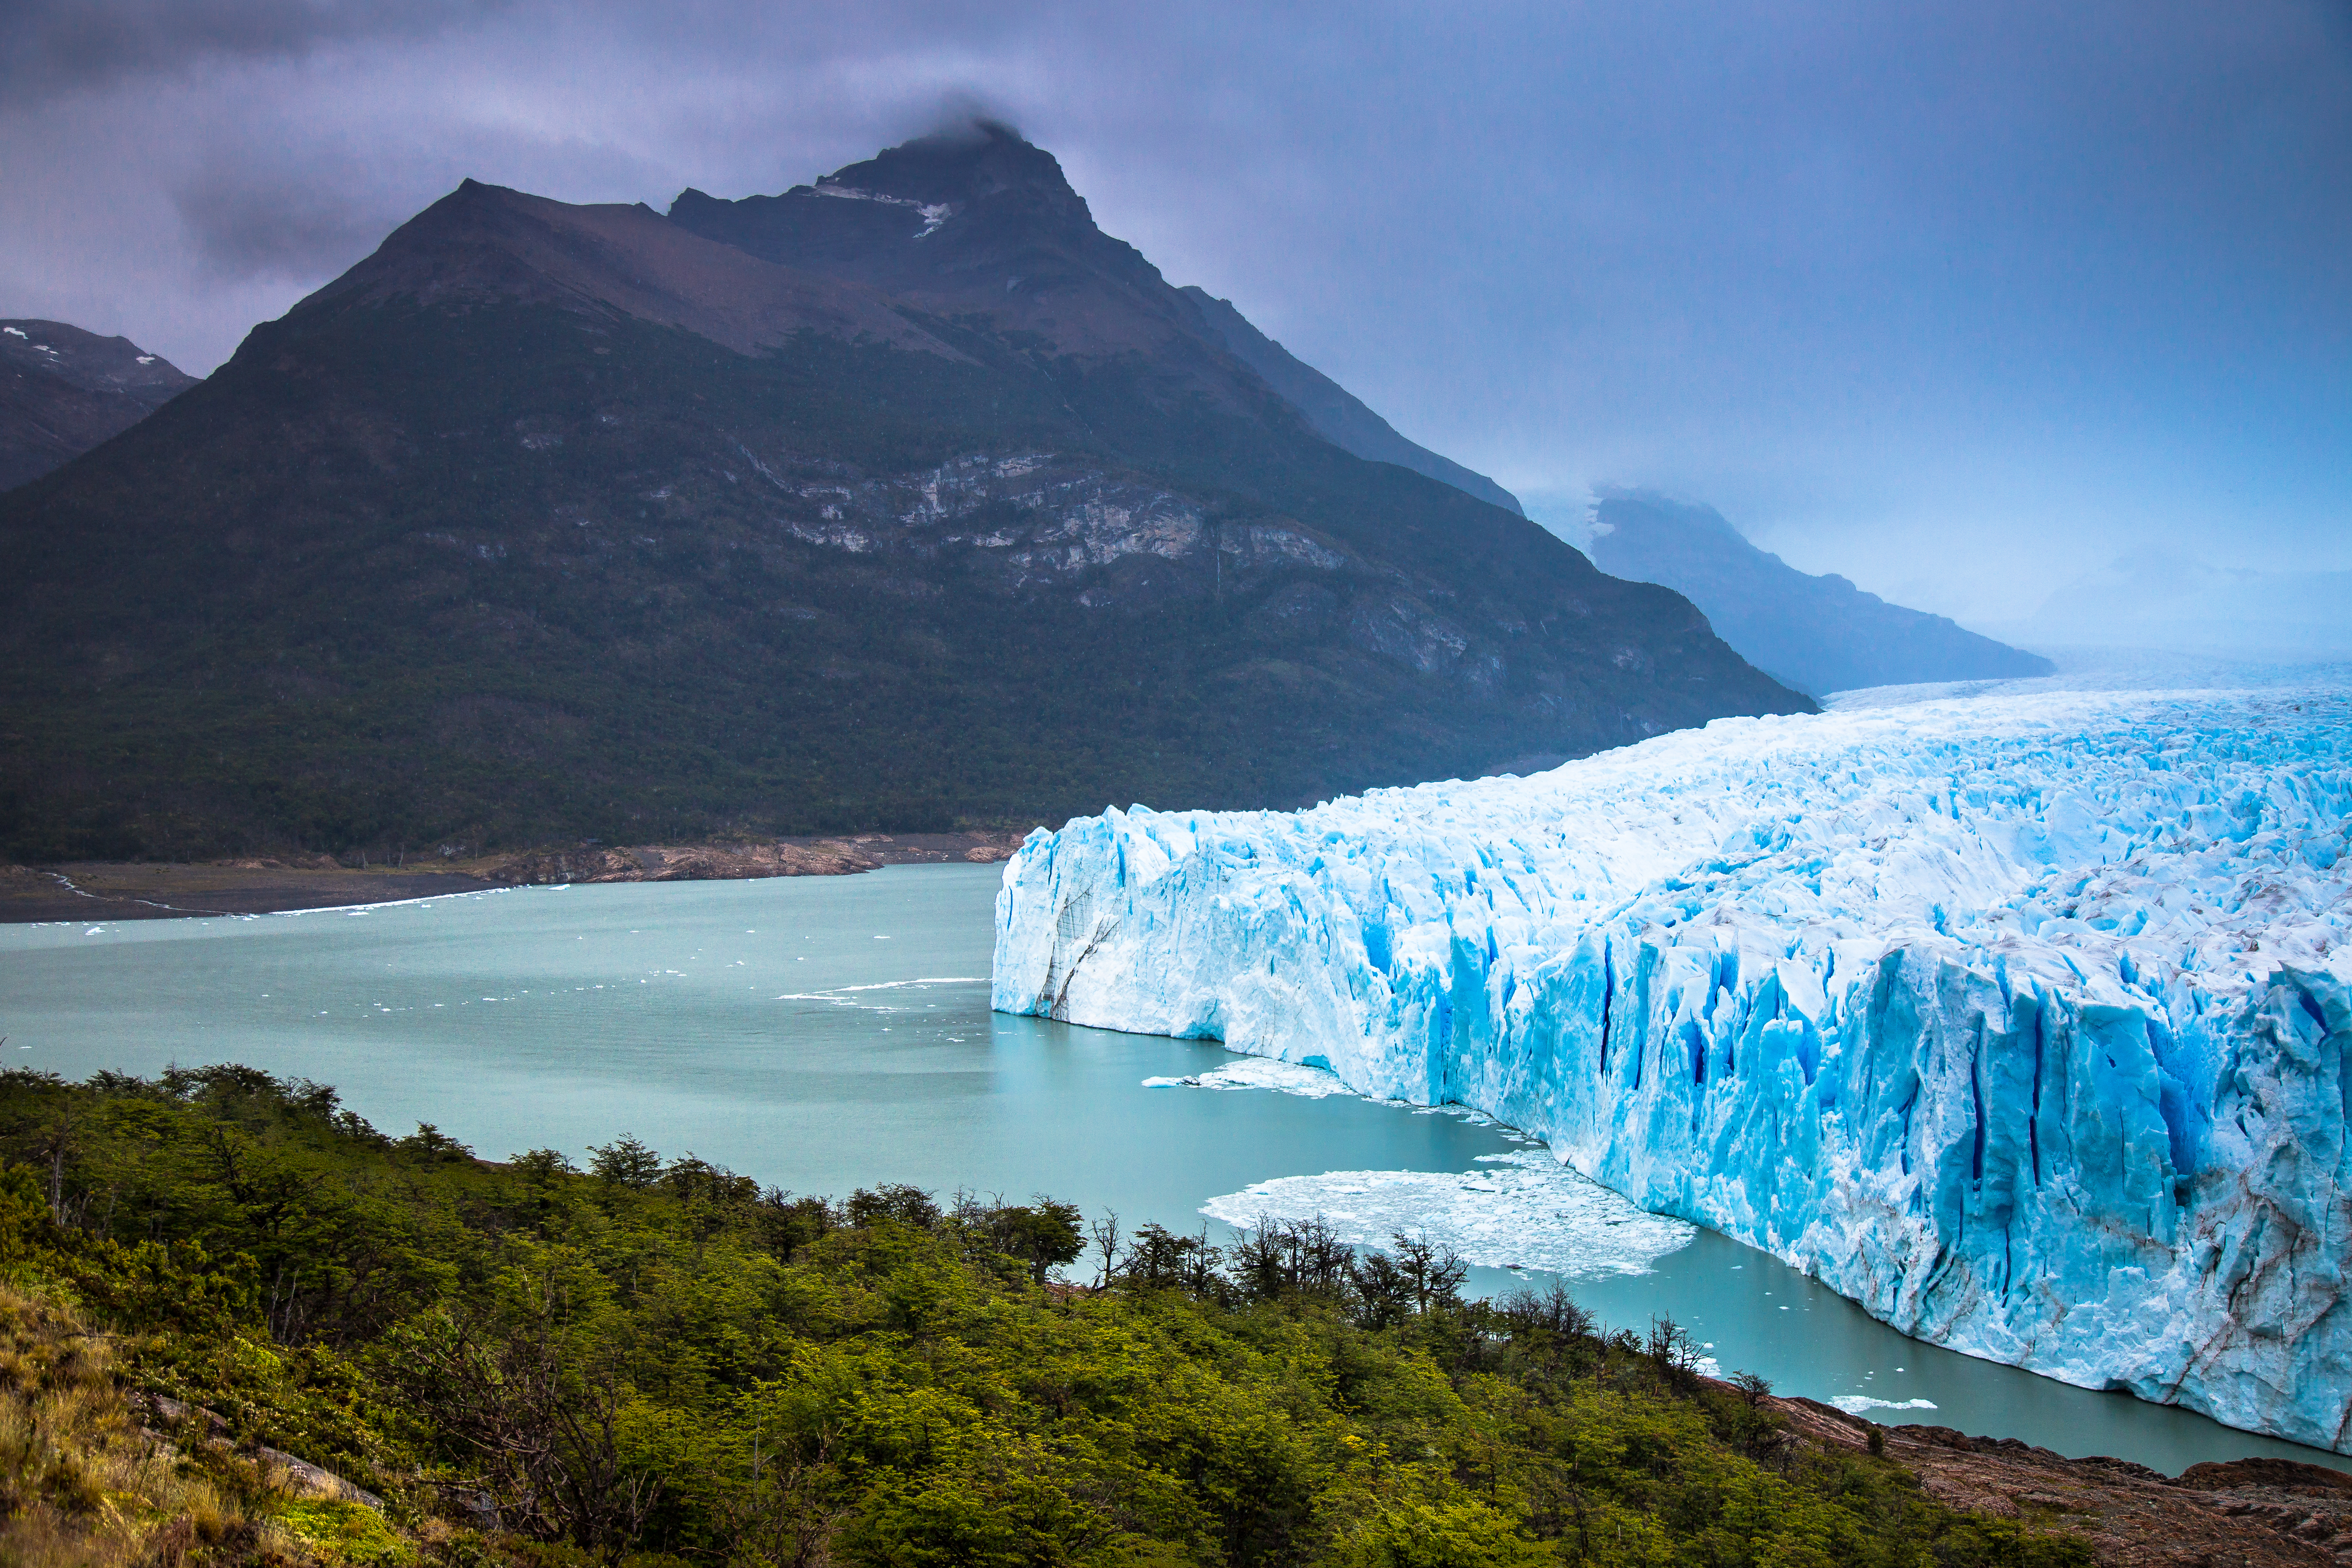 Upsala Glacier in Los Glaciares National Park in Argentina.